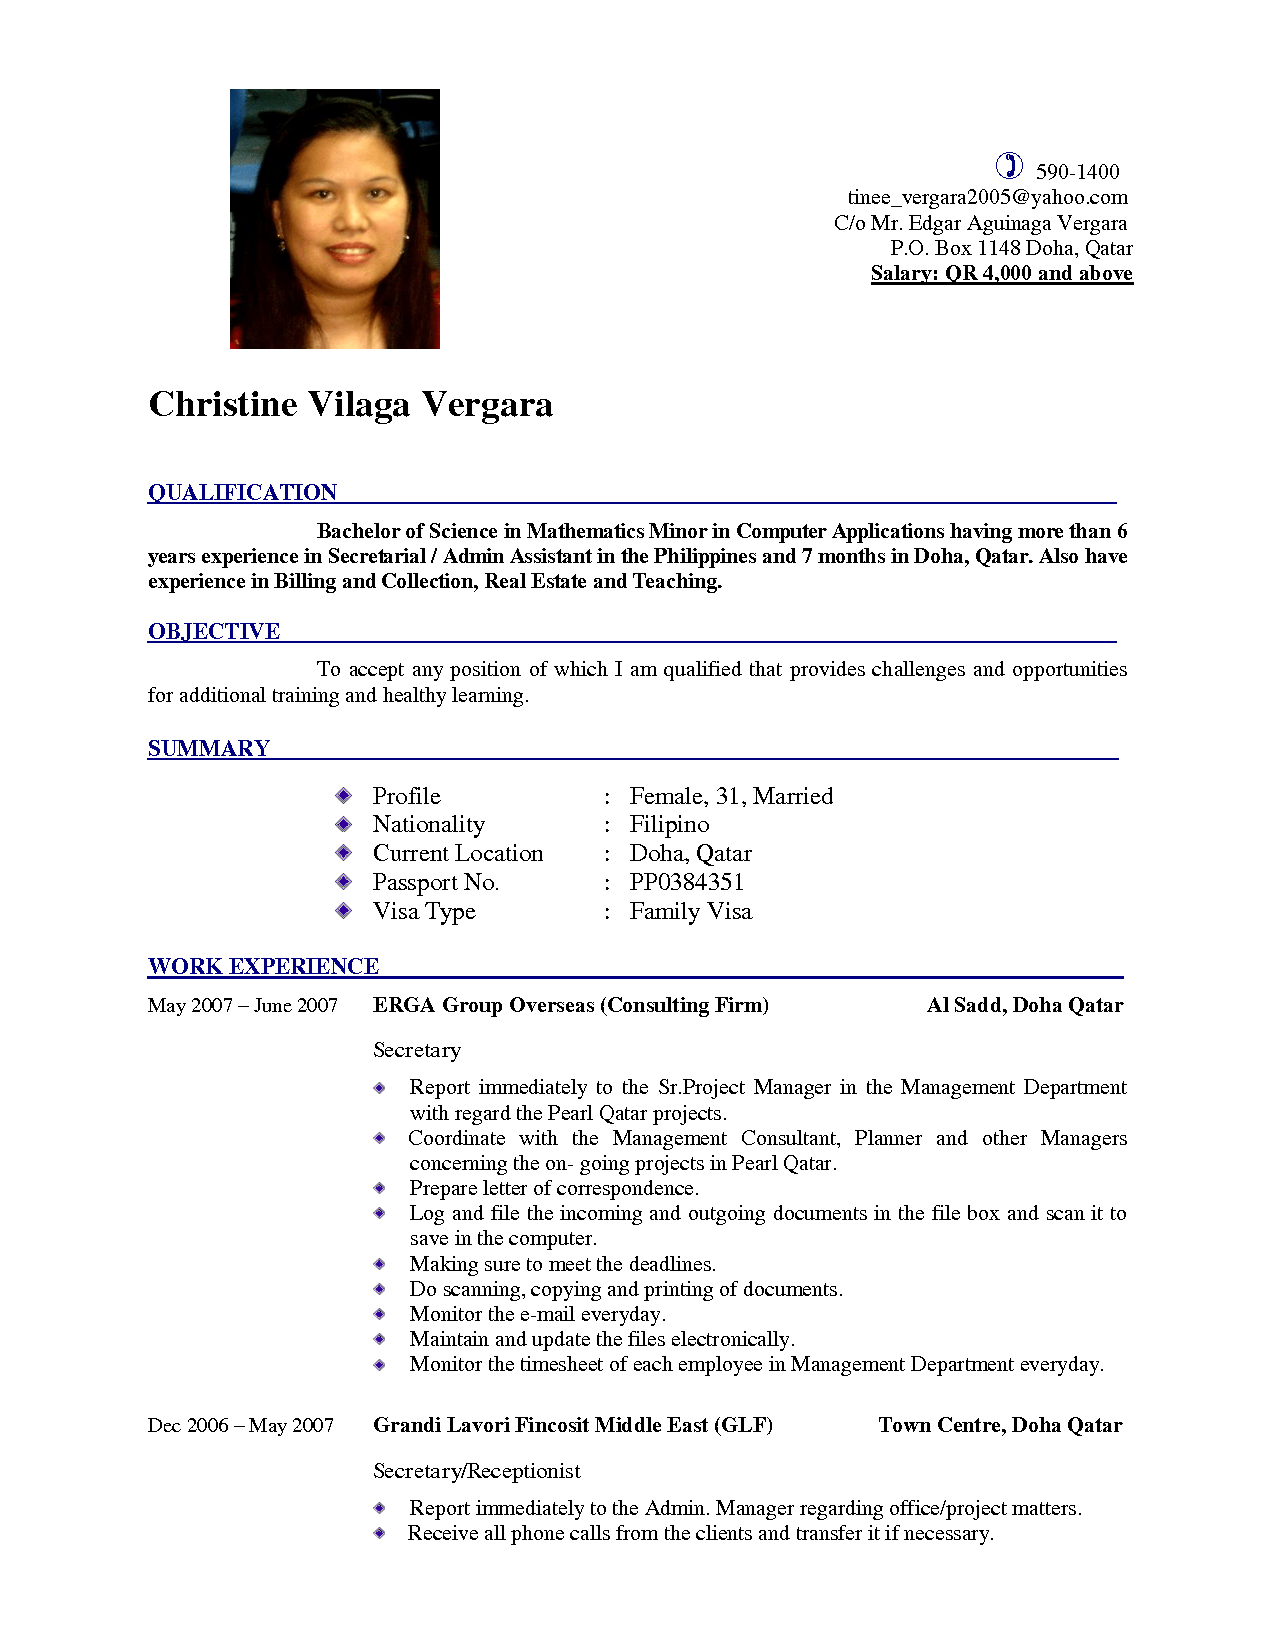 Latest Cv New Format With Salary Places to Visit